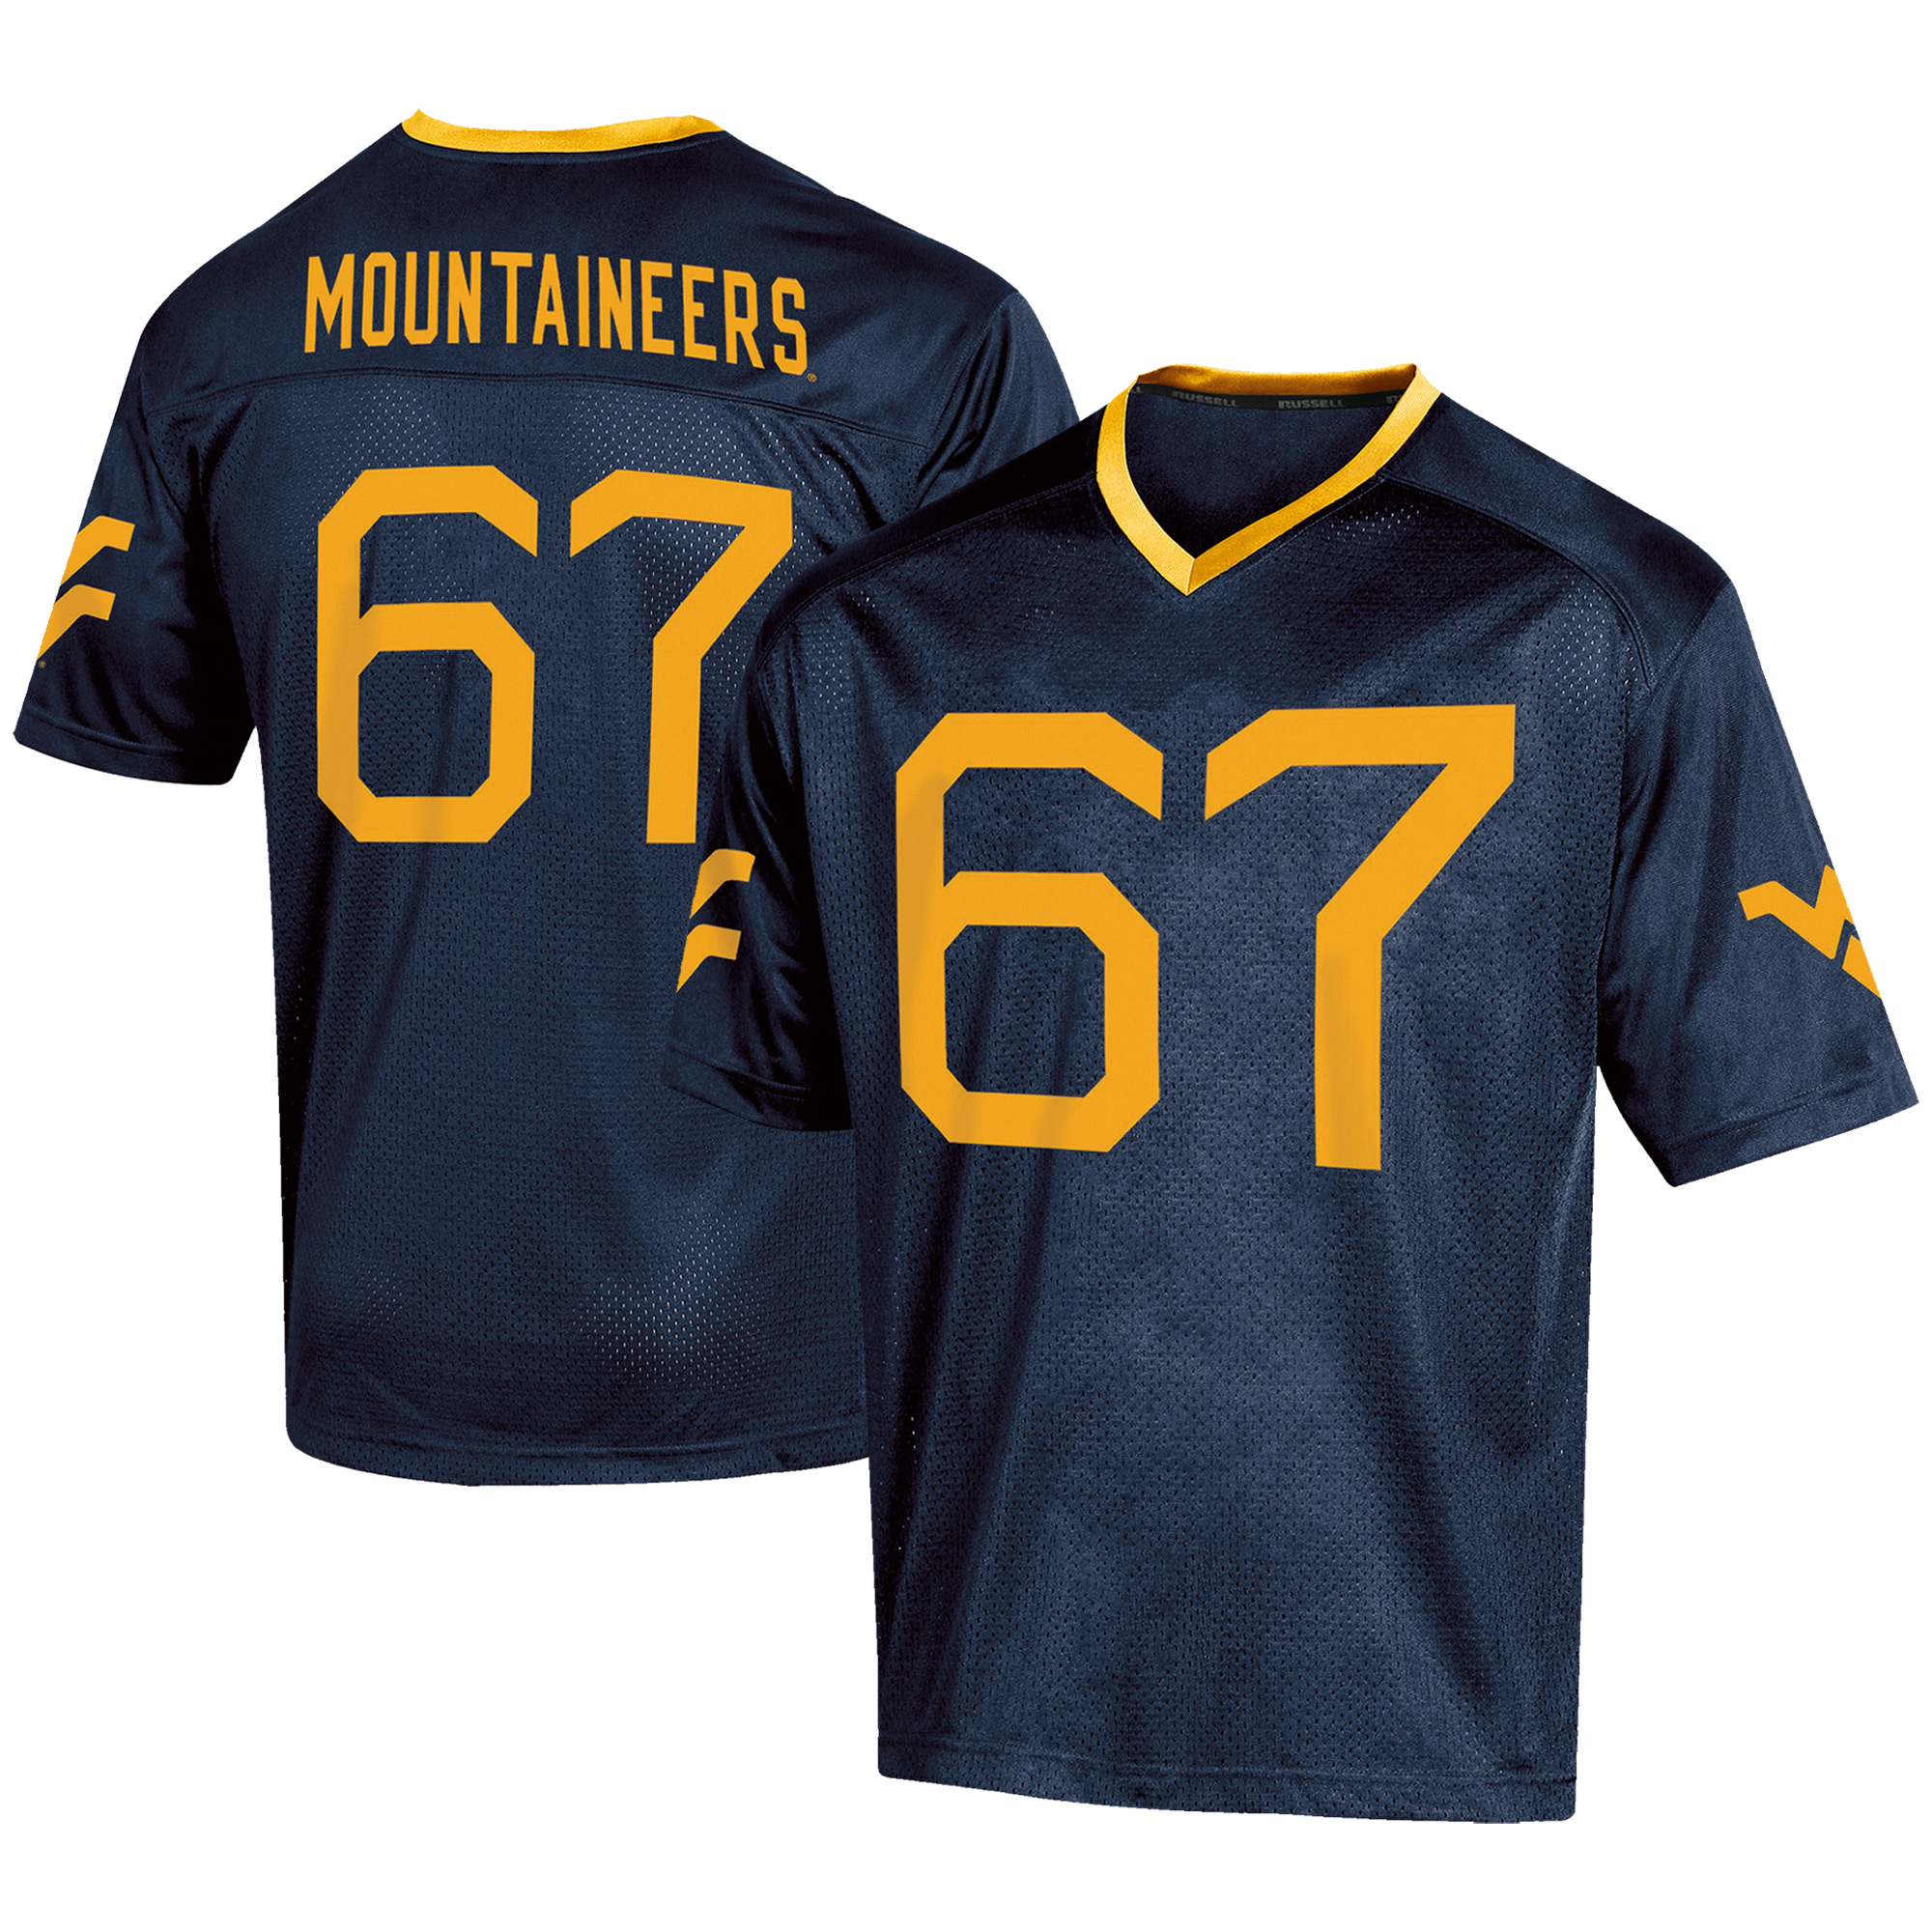 Men's Russell #67 Navy West Virginia Mountaineers Fashion Football Jersey